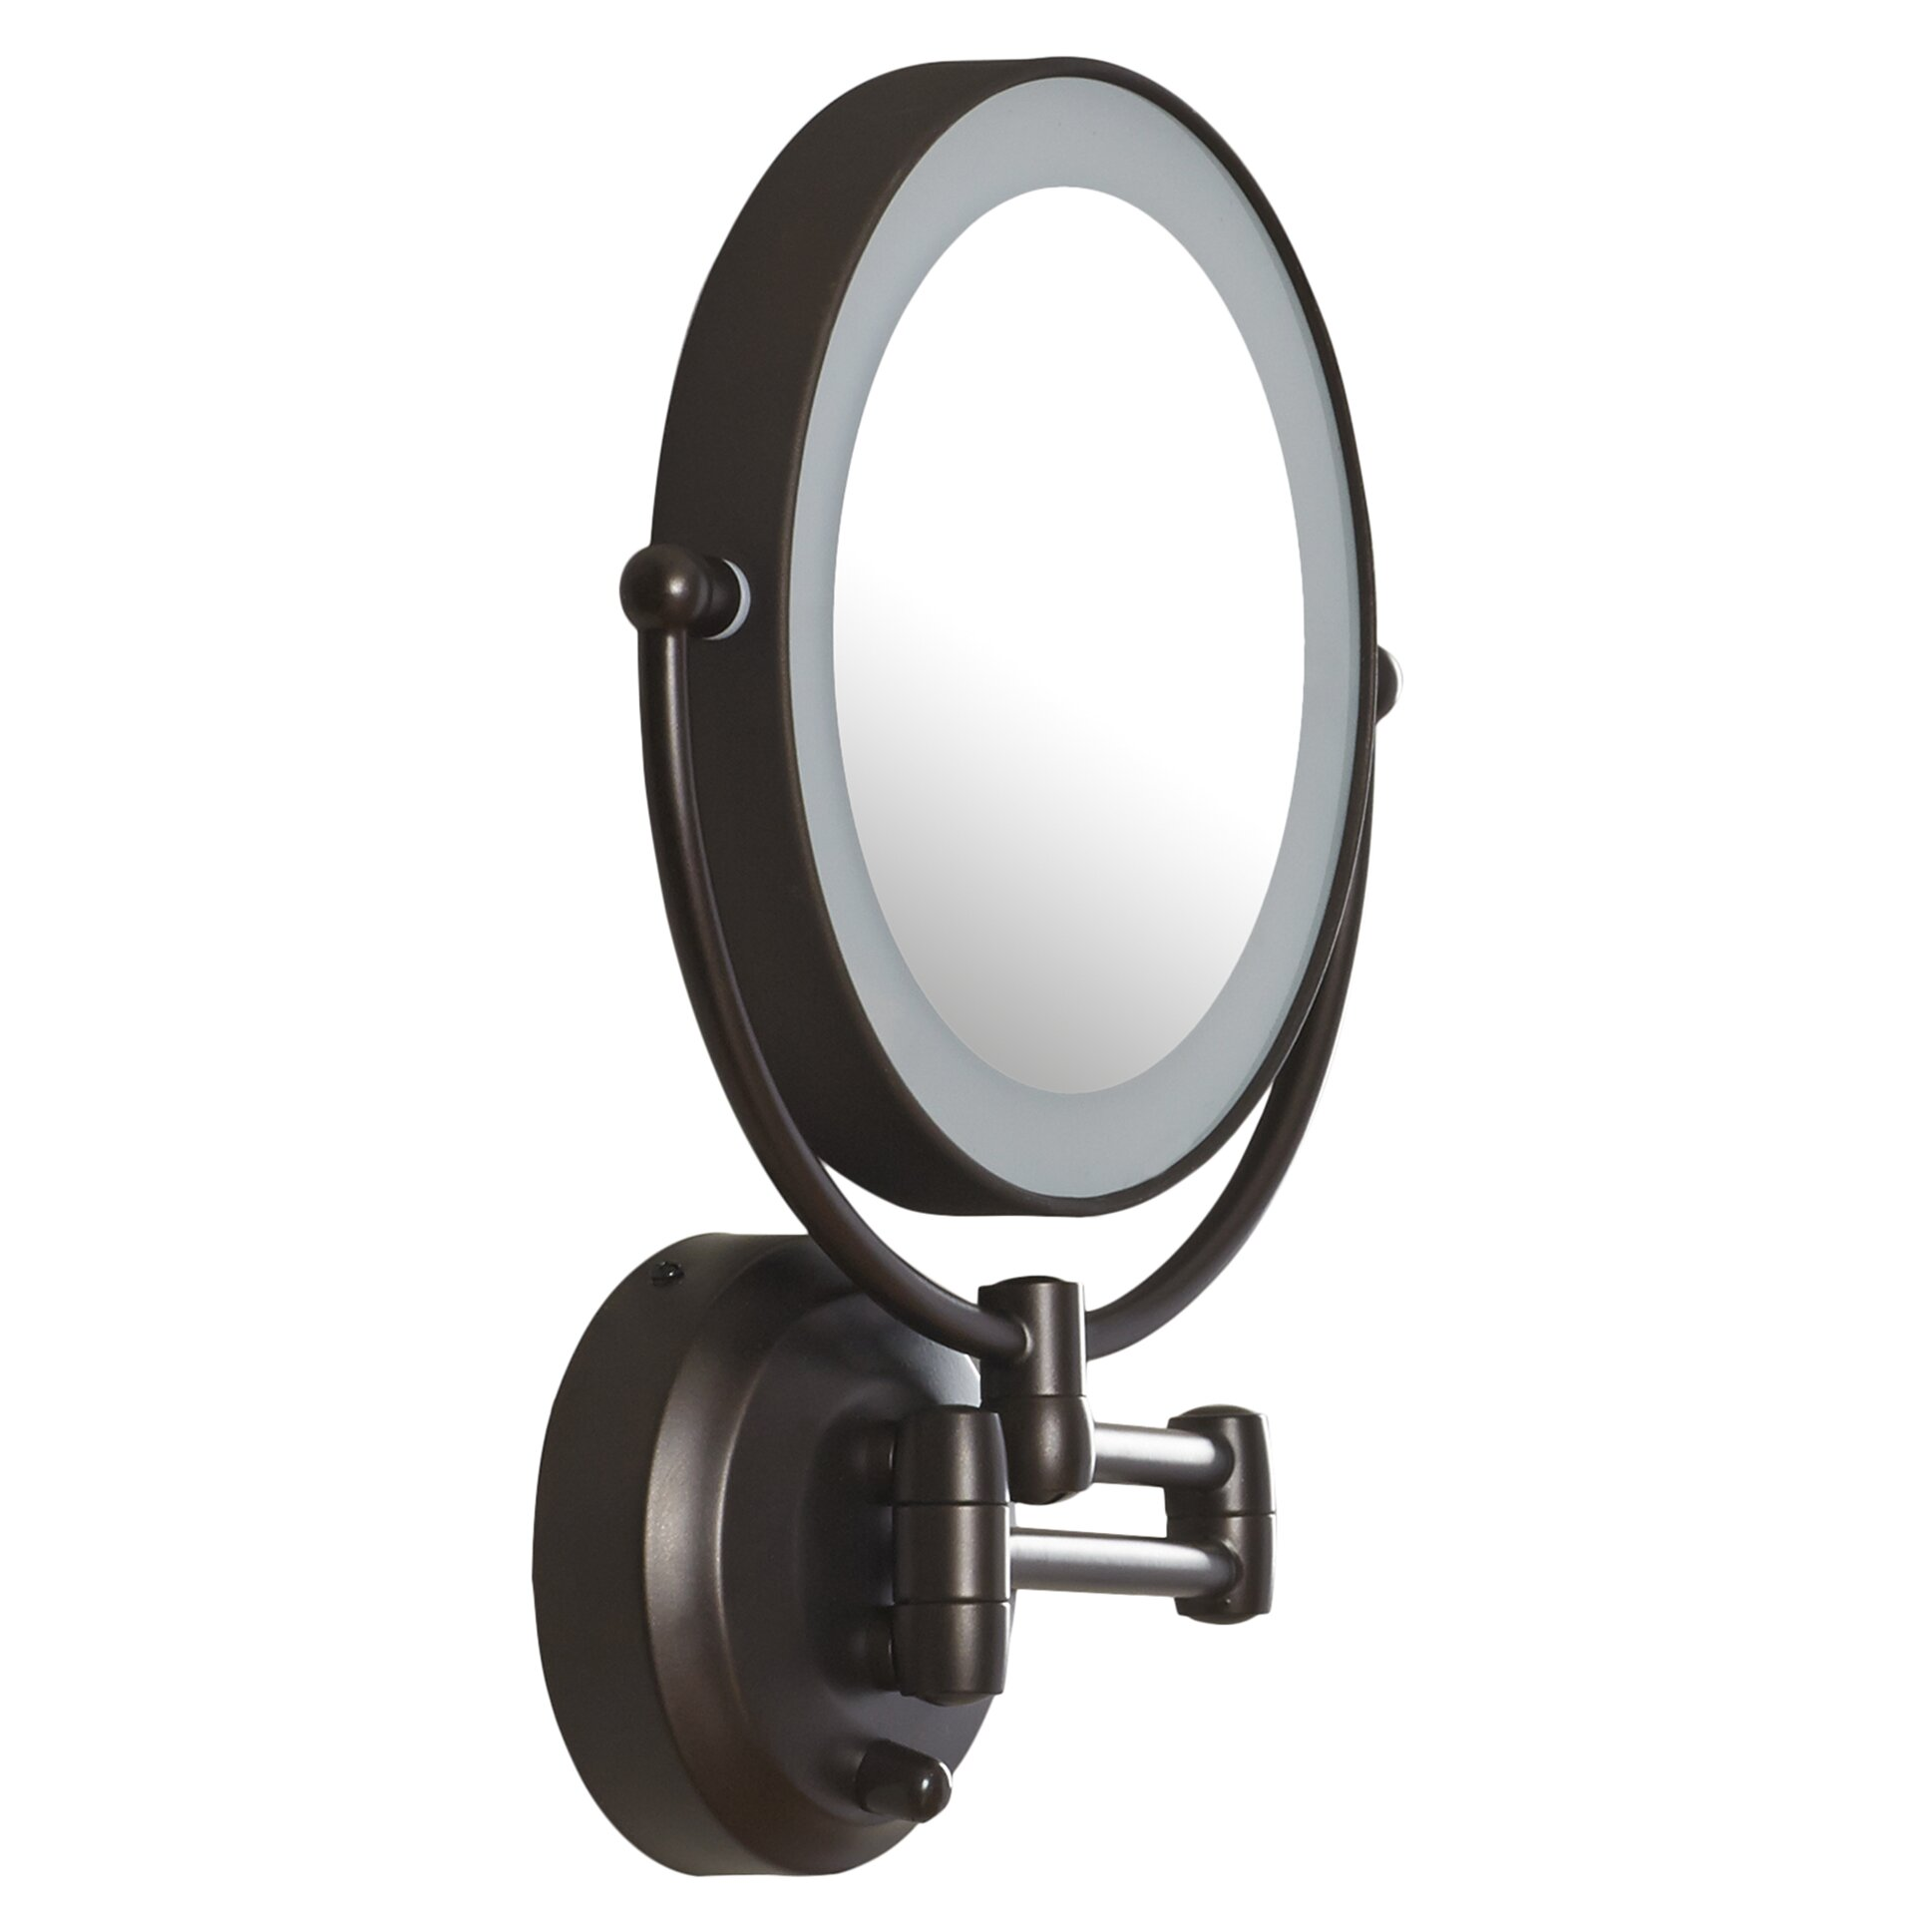 Zadro Wall Mounted Lighted Makeup Mirror: Zadro LED Lighted 1X/10X Magnification Mount Wall Mirror. Magnifying glass,Lighting